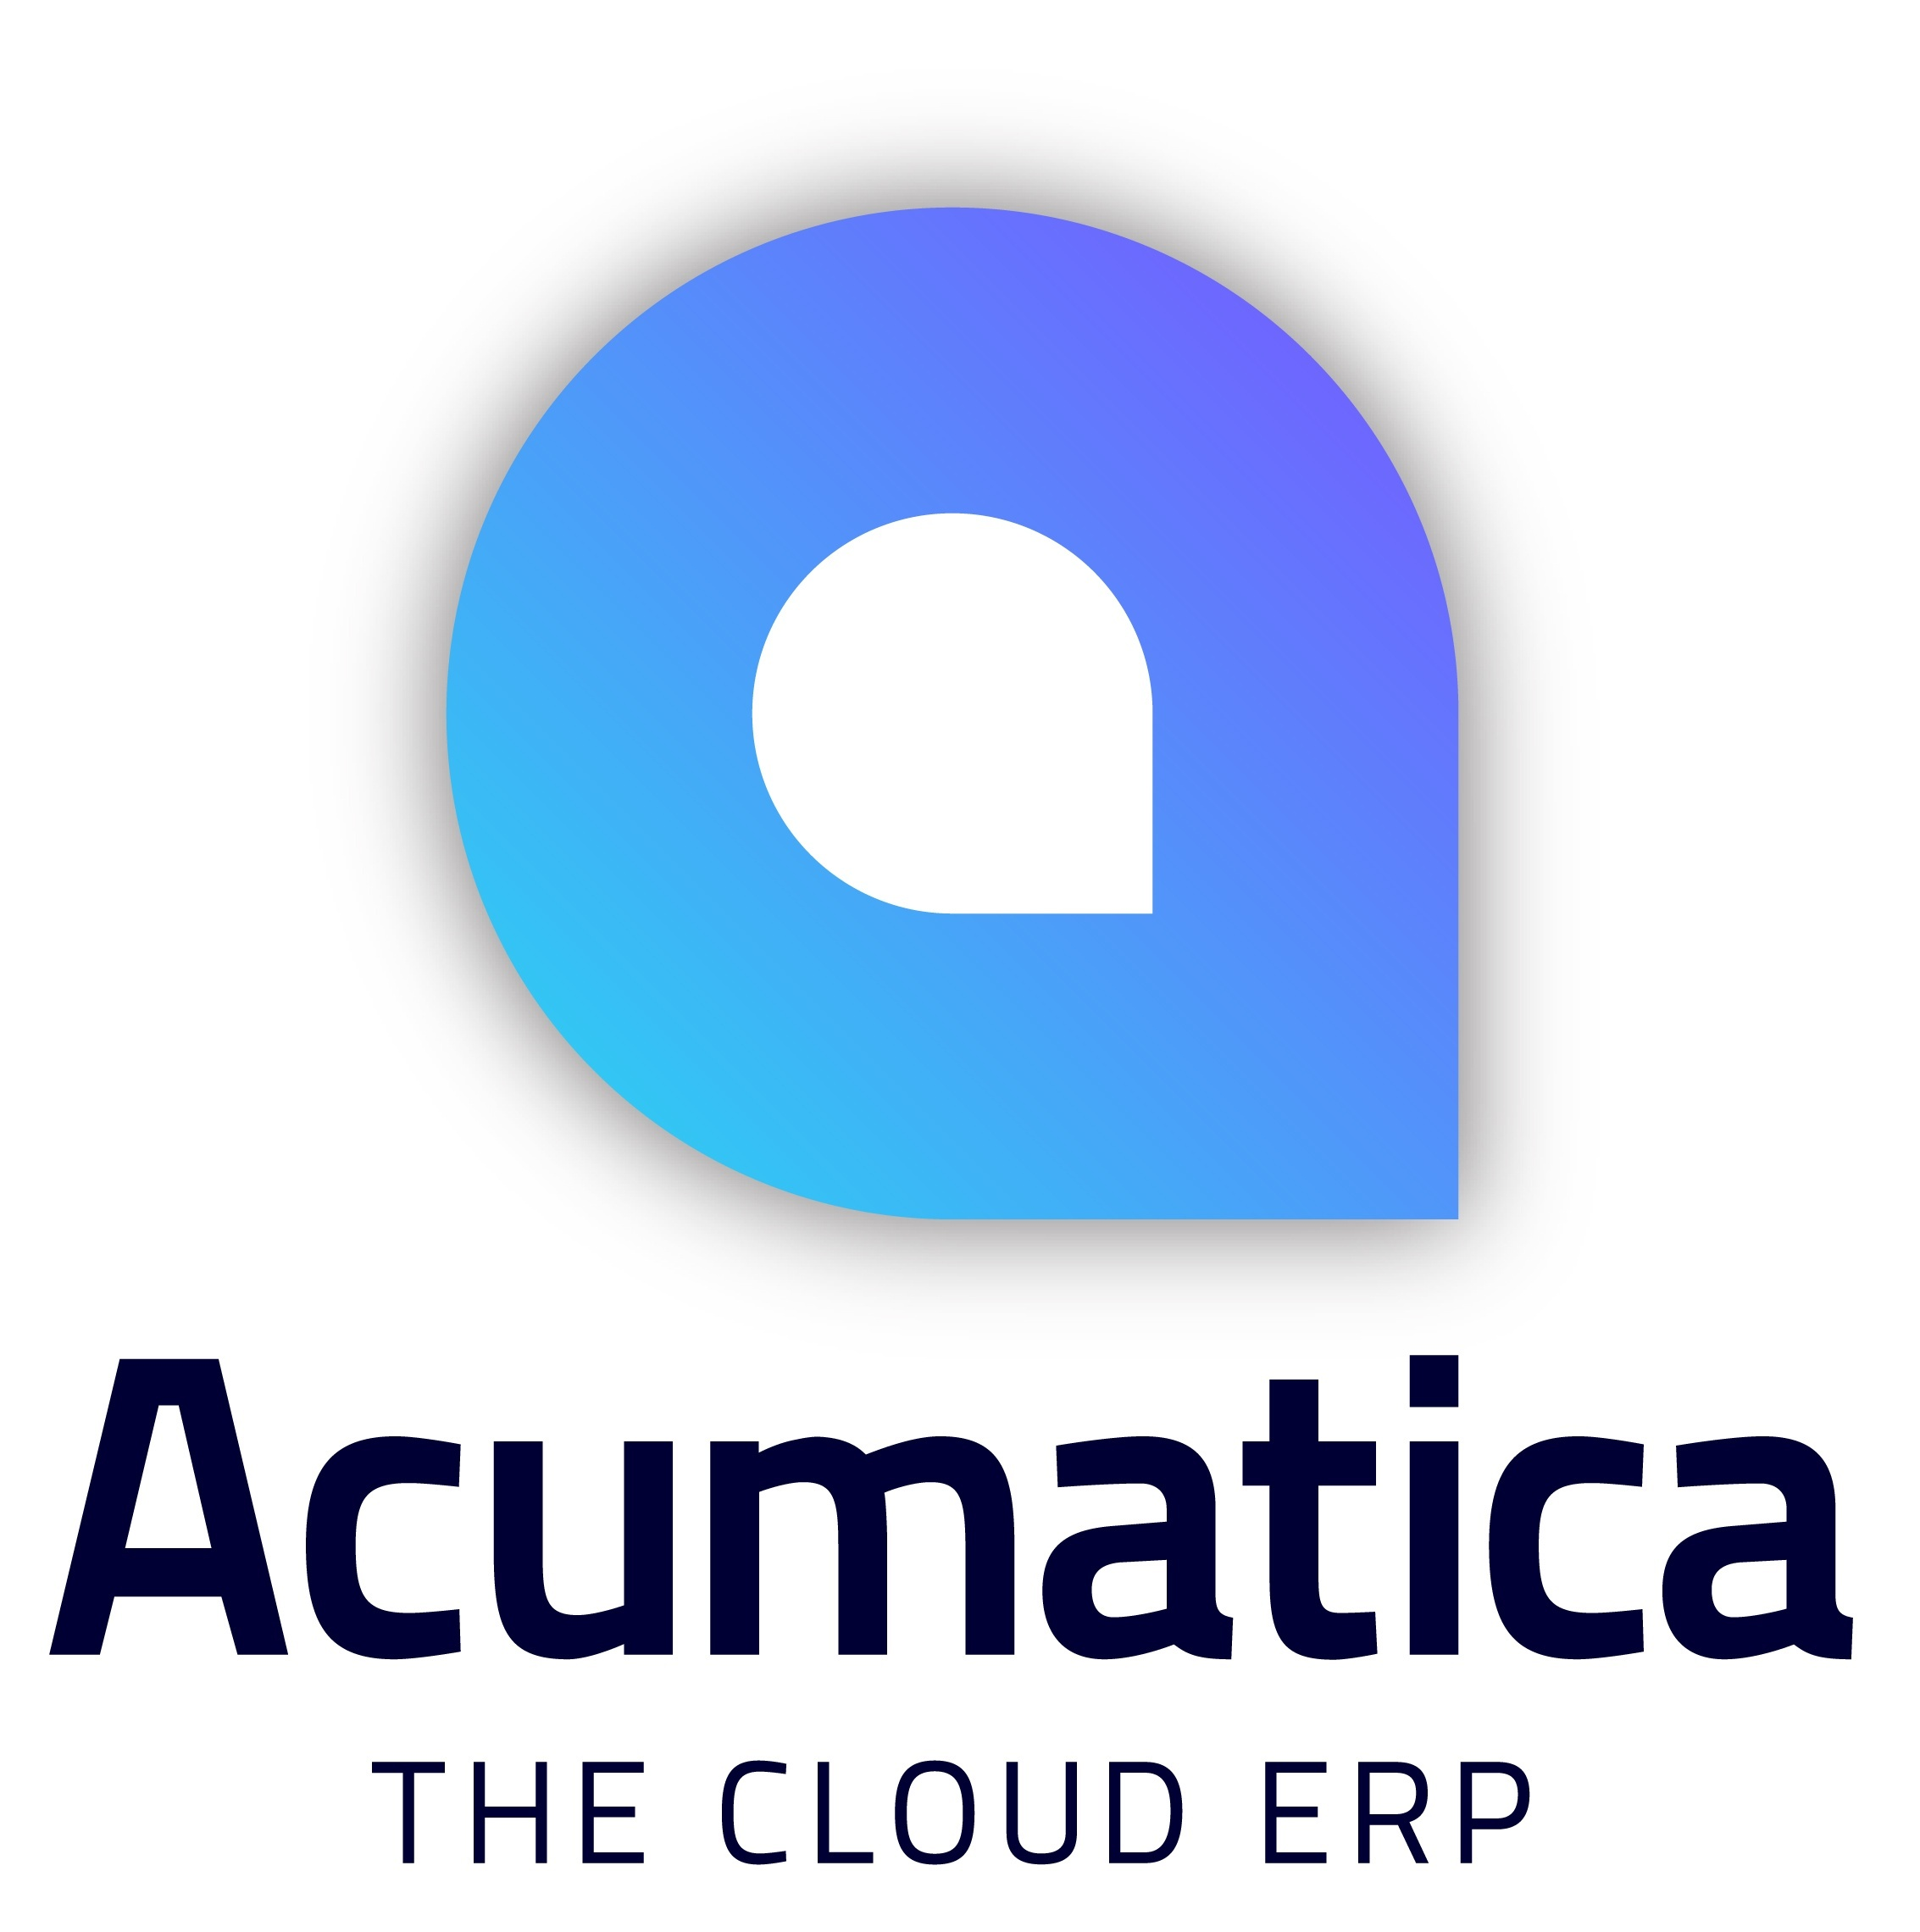 Acumatica Summit 2018: What We Learned